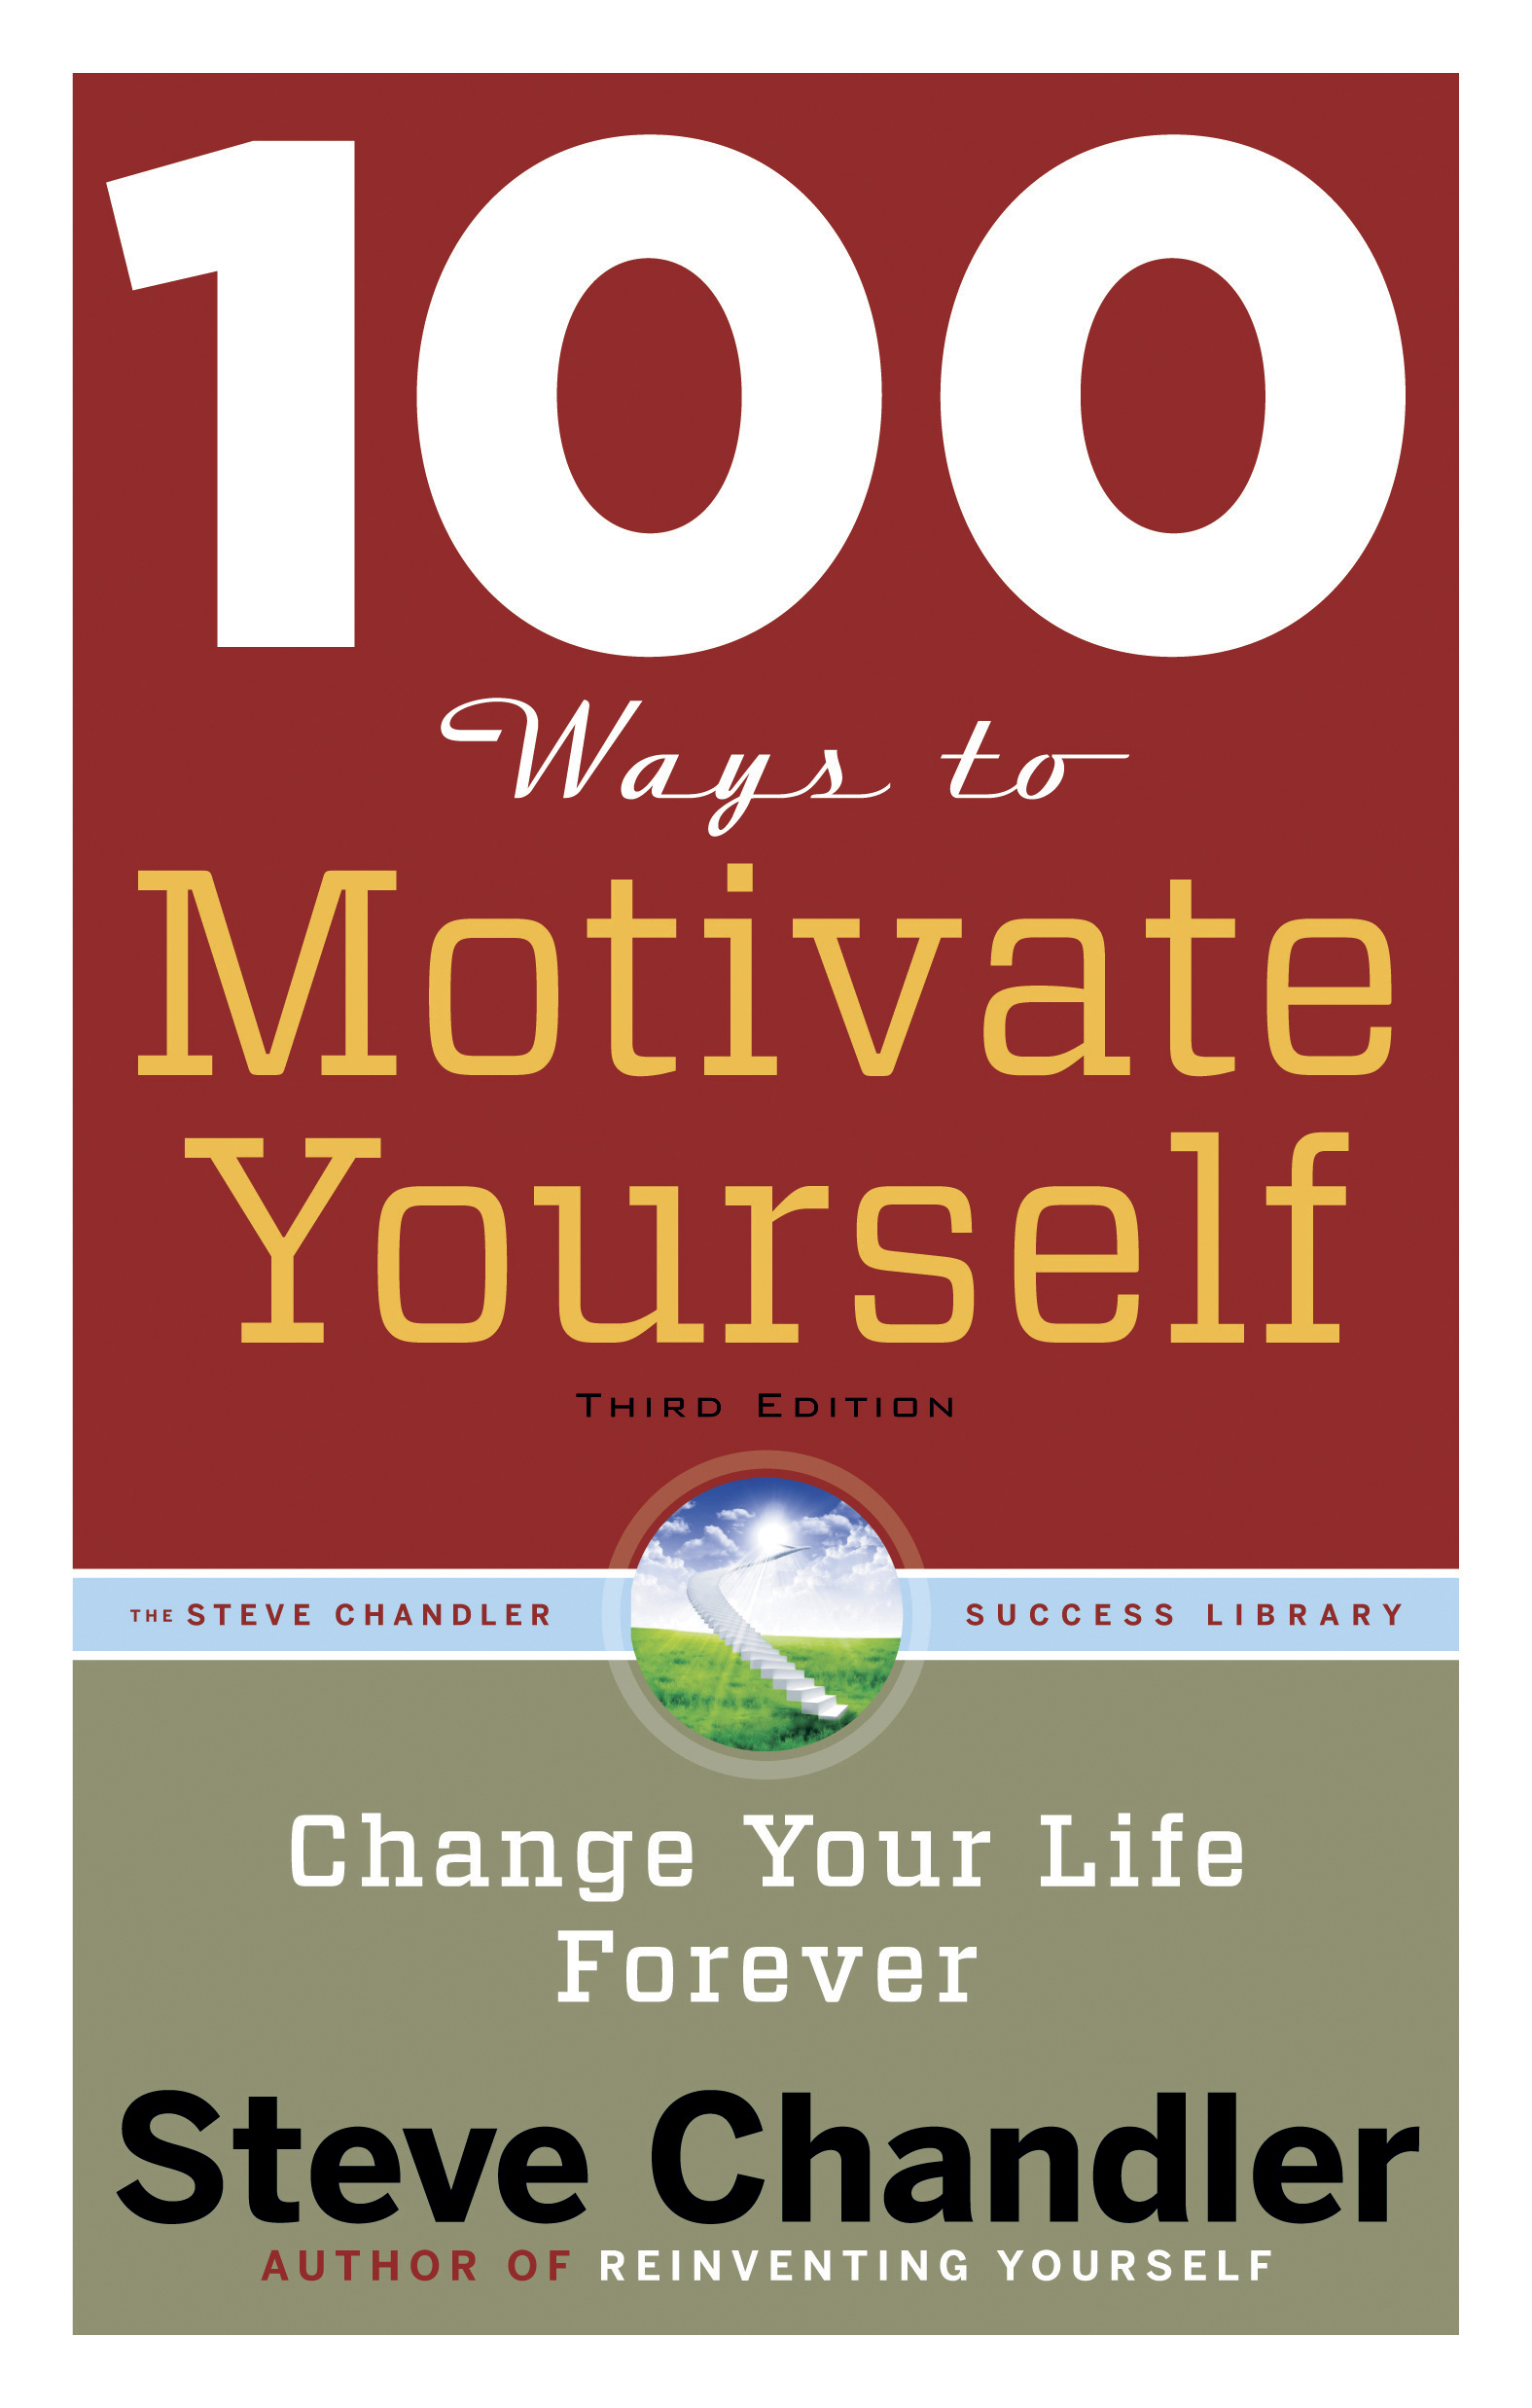 100 Ways to Motivate Yourself, Third Edition By: Steve Chandler